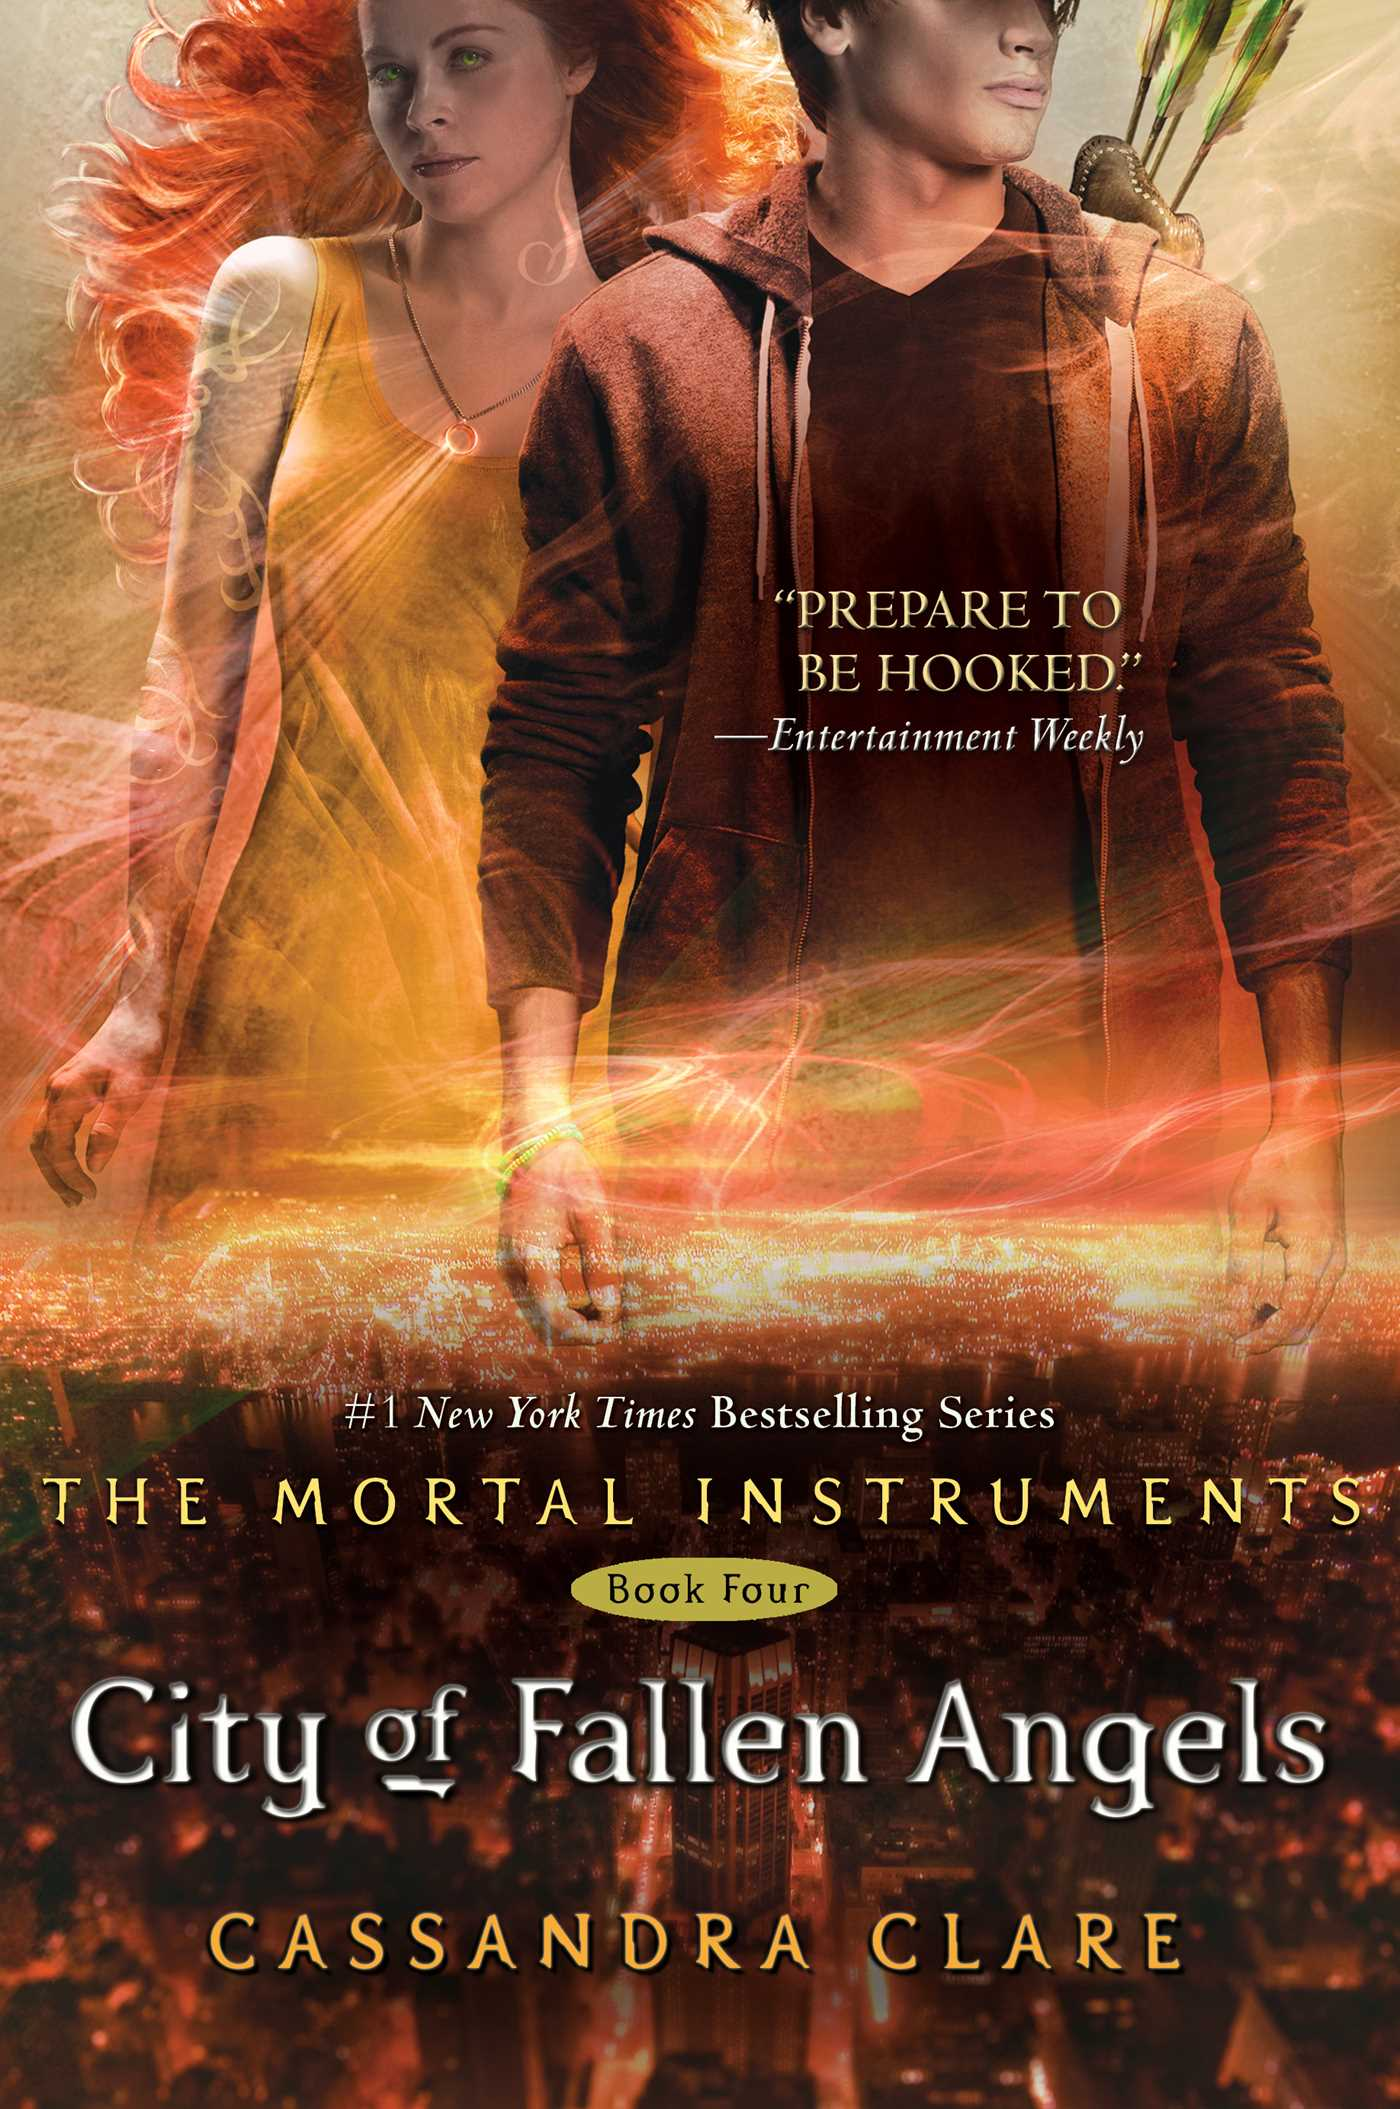 City of fallen angels 9781442403543 hr